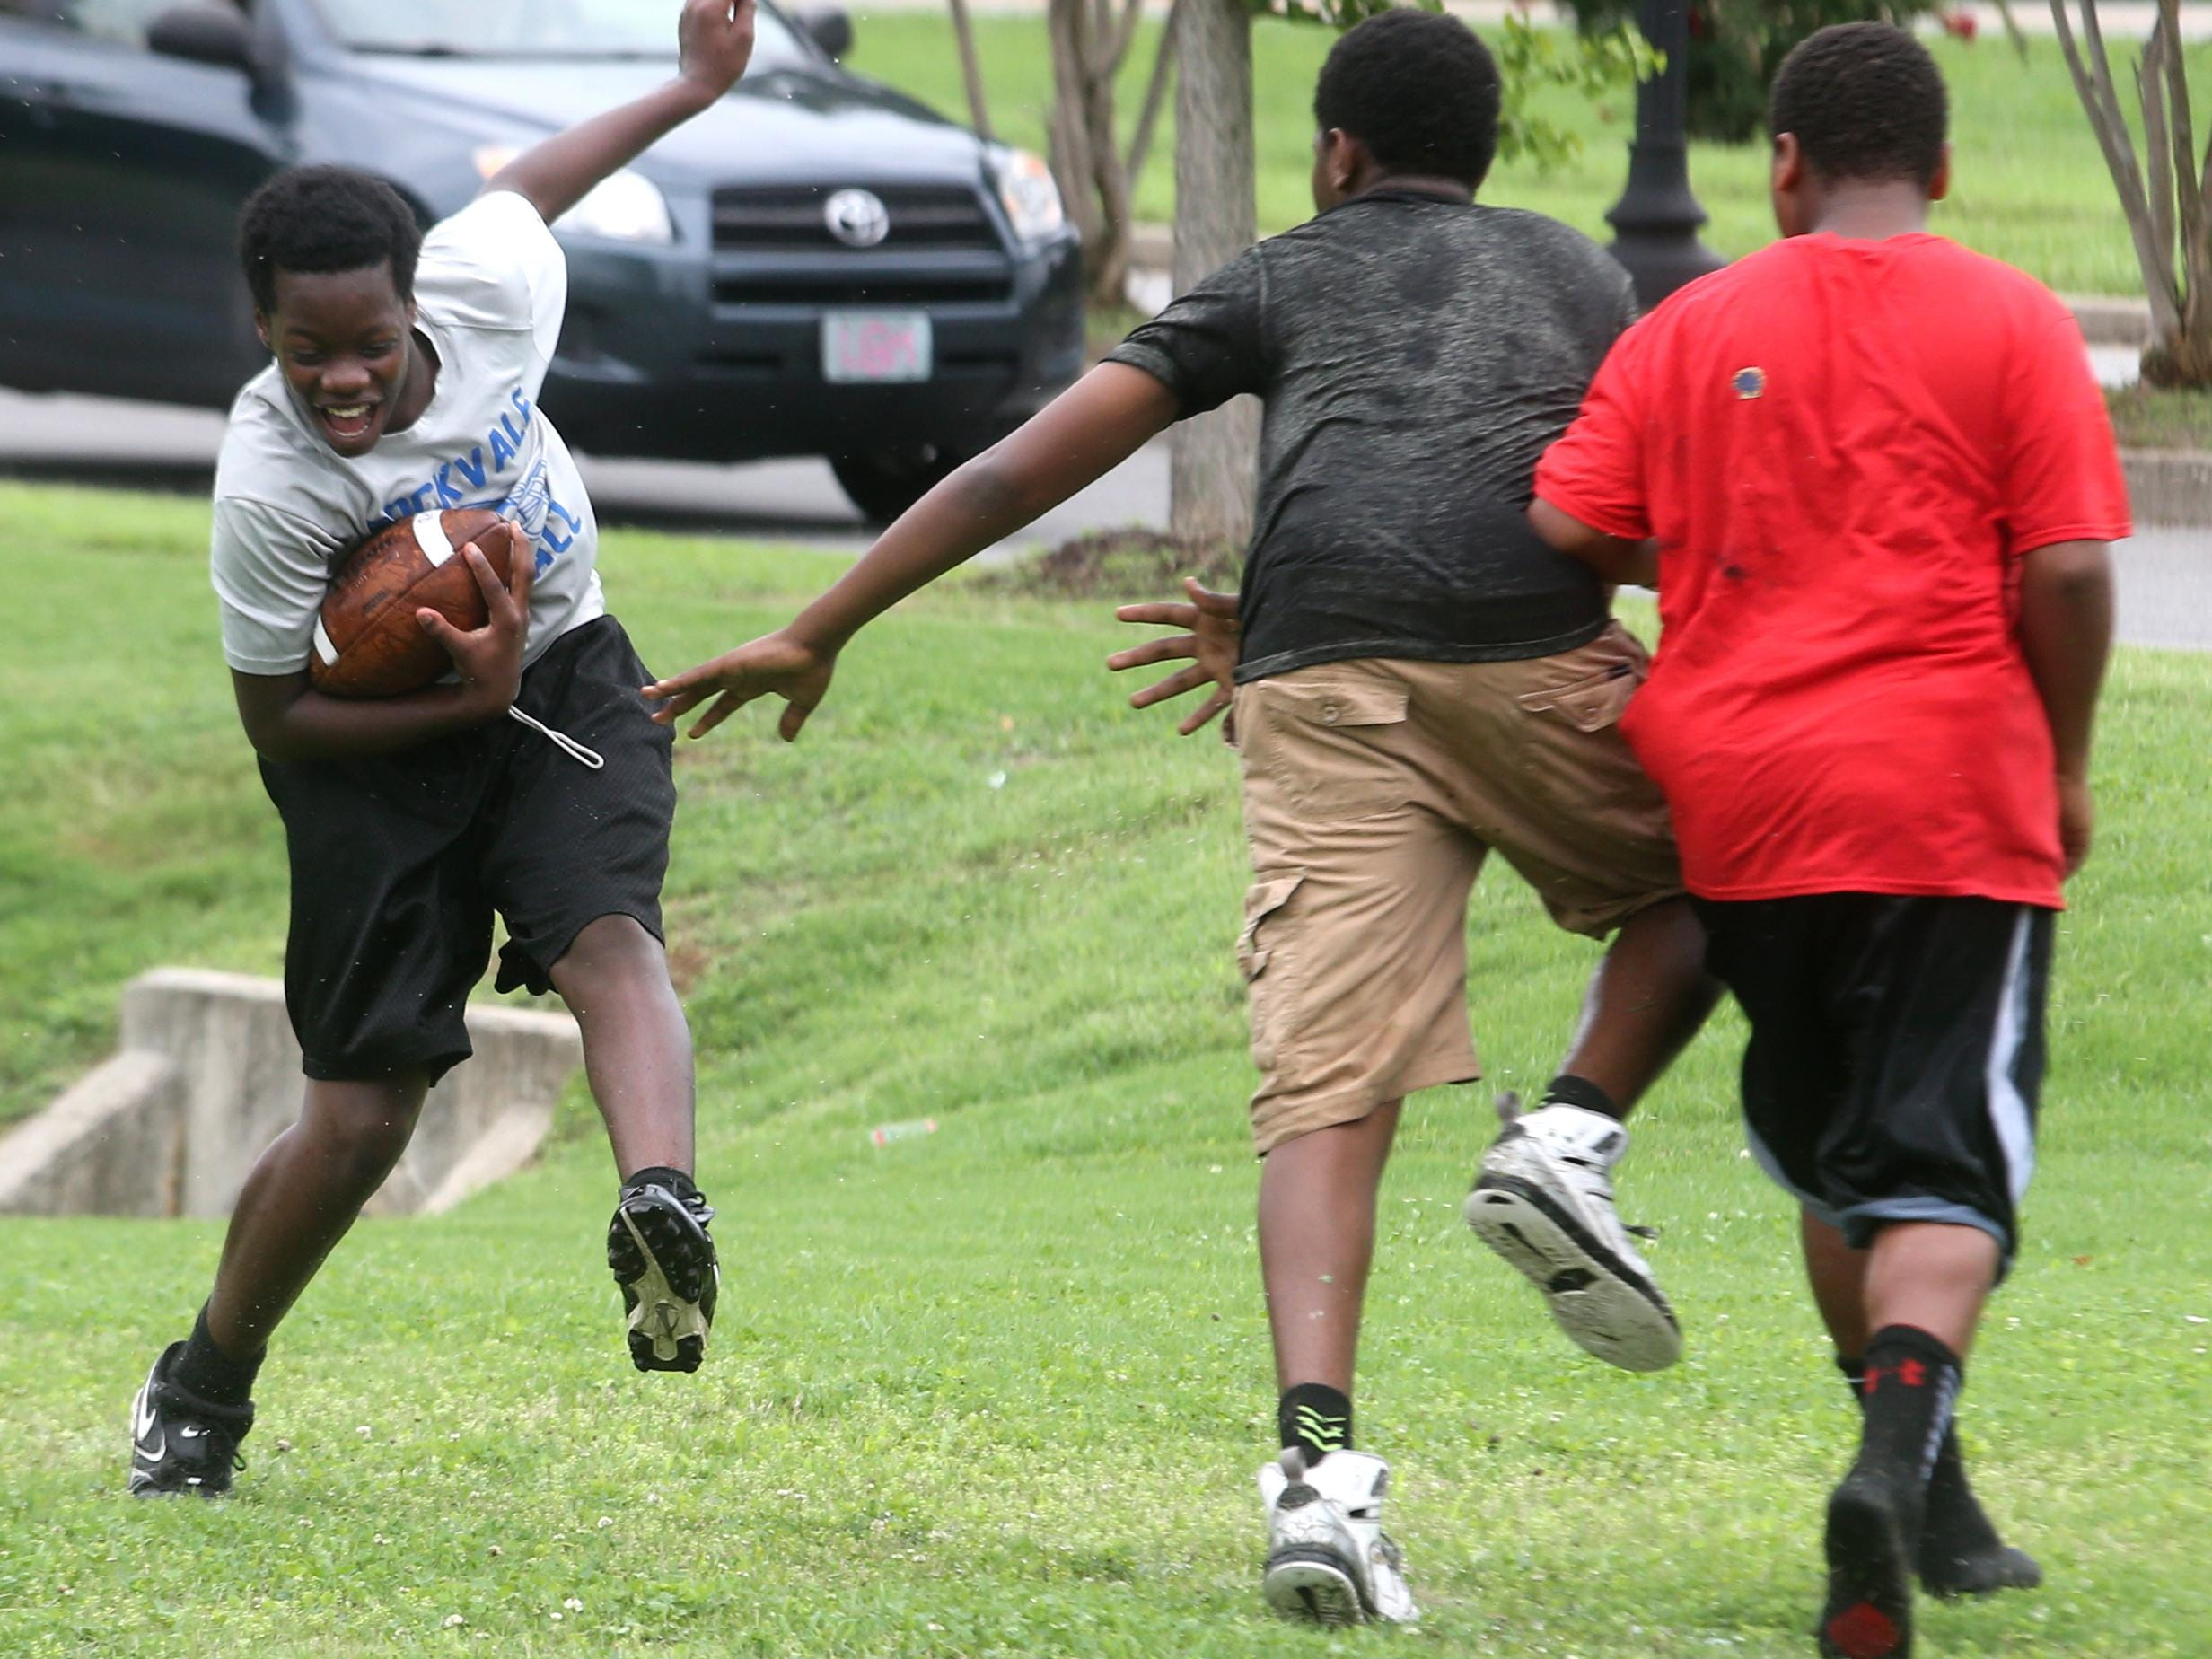 Rockvale's Damarcus Smalls, 13, tries to miss an opponent during Thursday's 7-on-7 contest at Patterson Park Community Center.